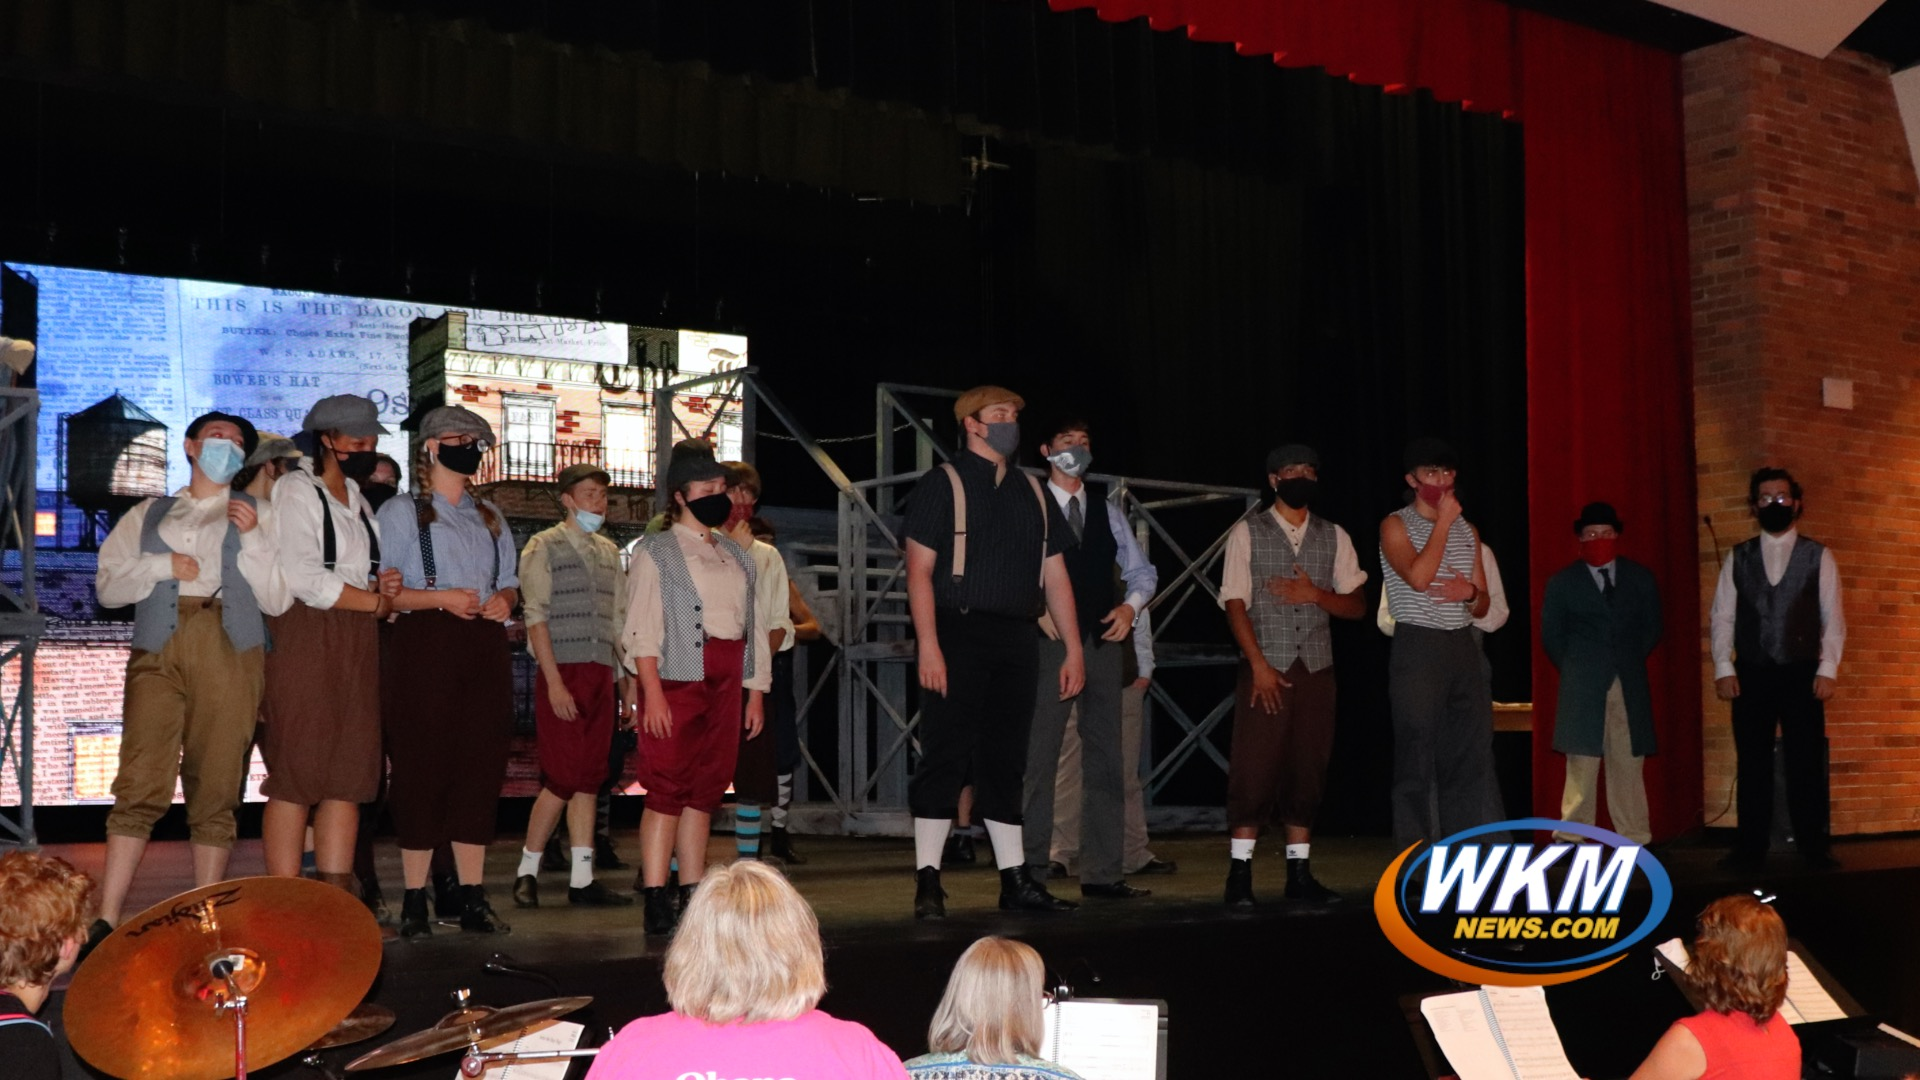 Madison Theater Set to Perform 'Newsies' This Weekend